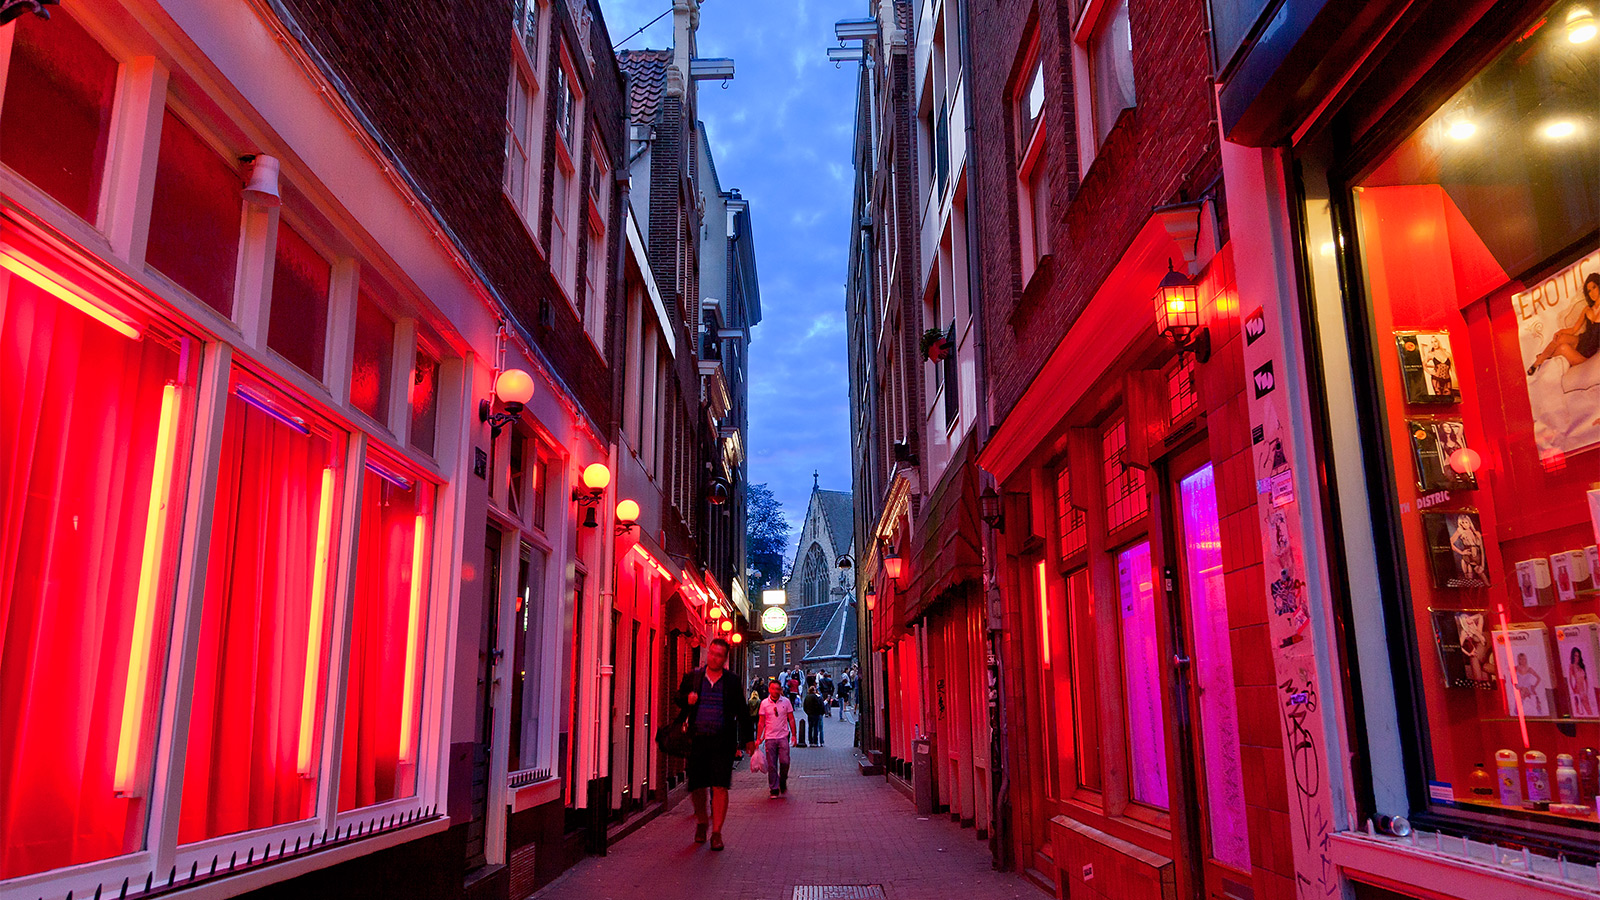 Amsterdam's red-light district: What it's like to live there | CNN Travel